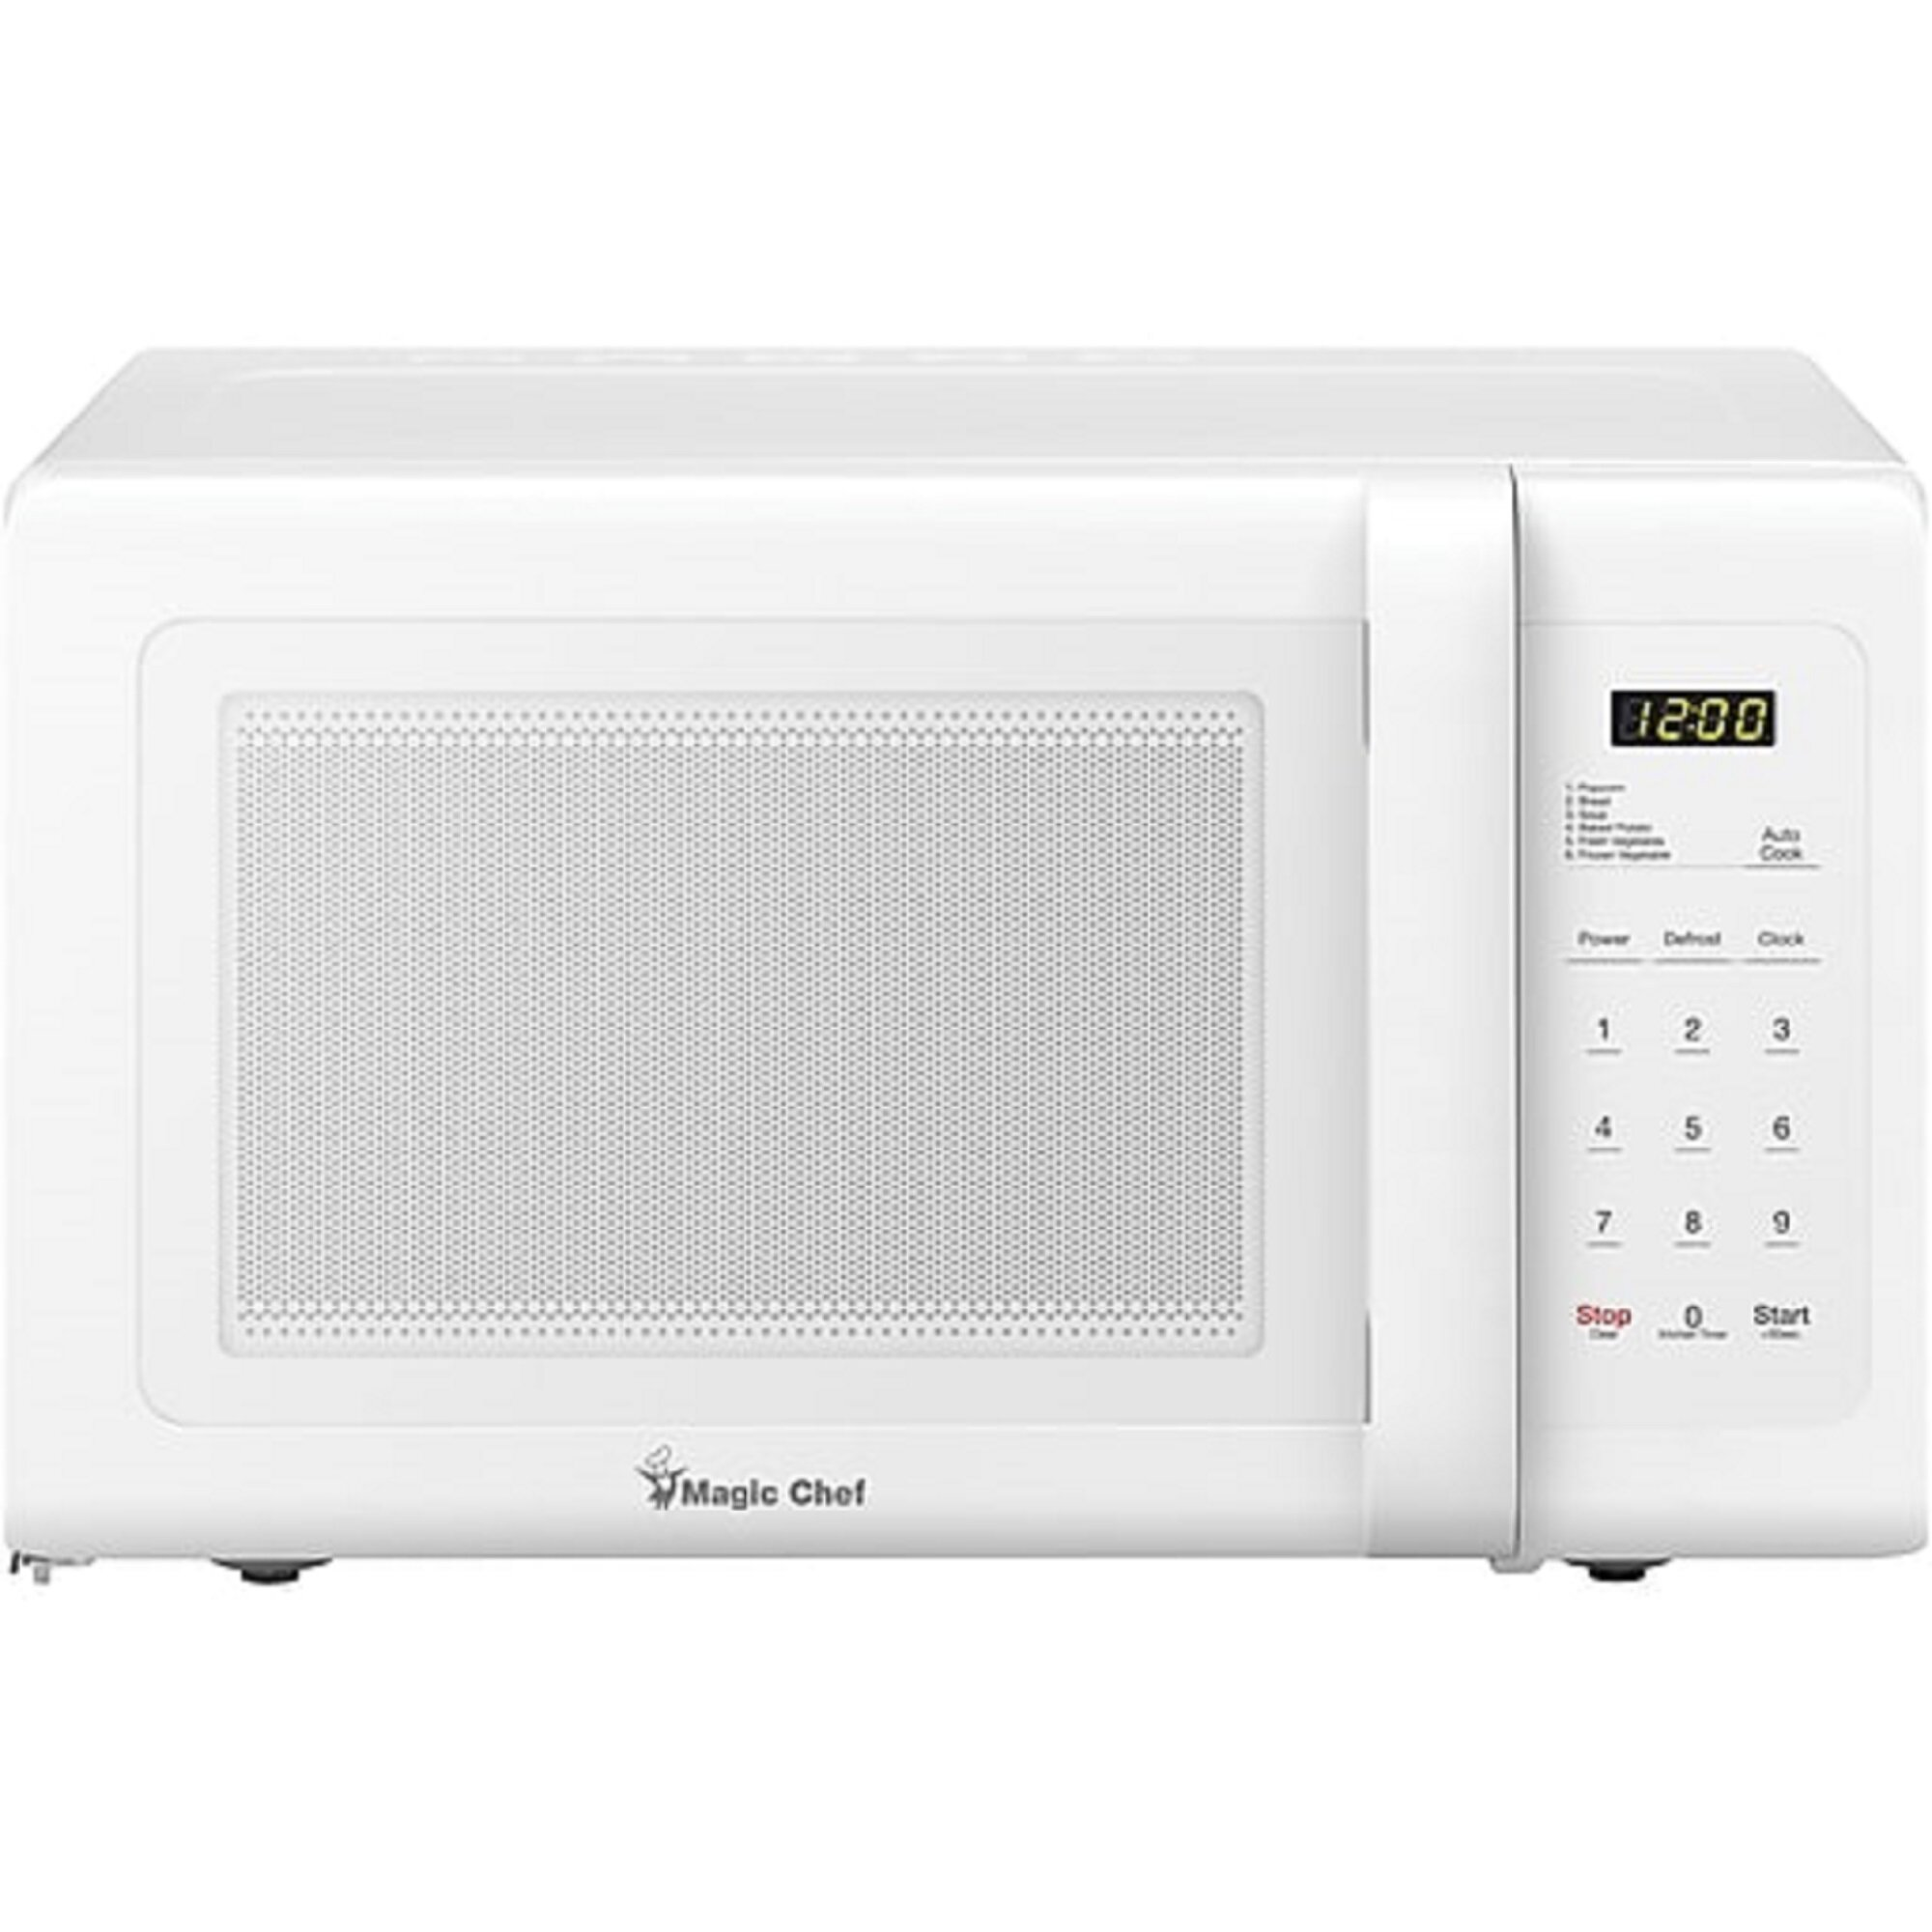 Magic Chef Microwave Issues Bestmicrowave